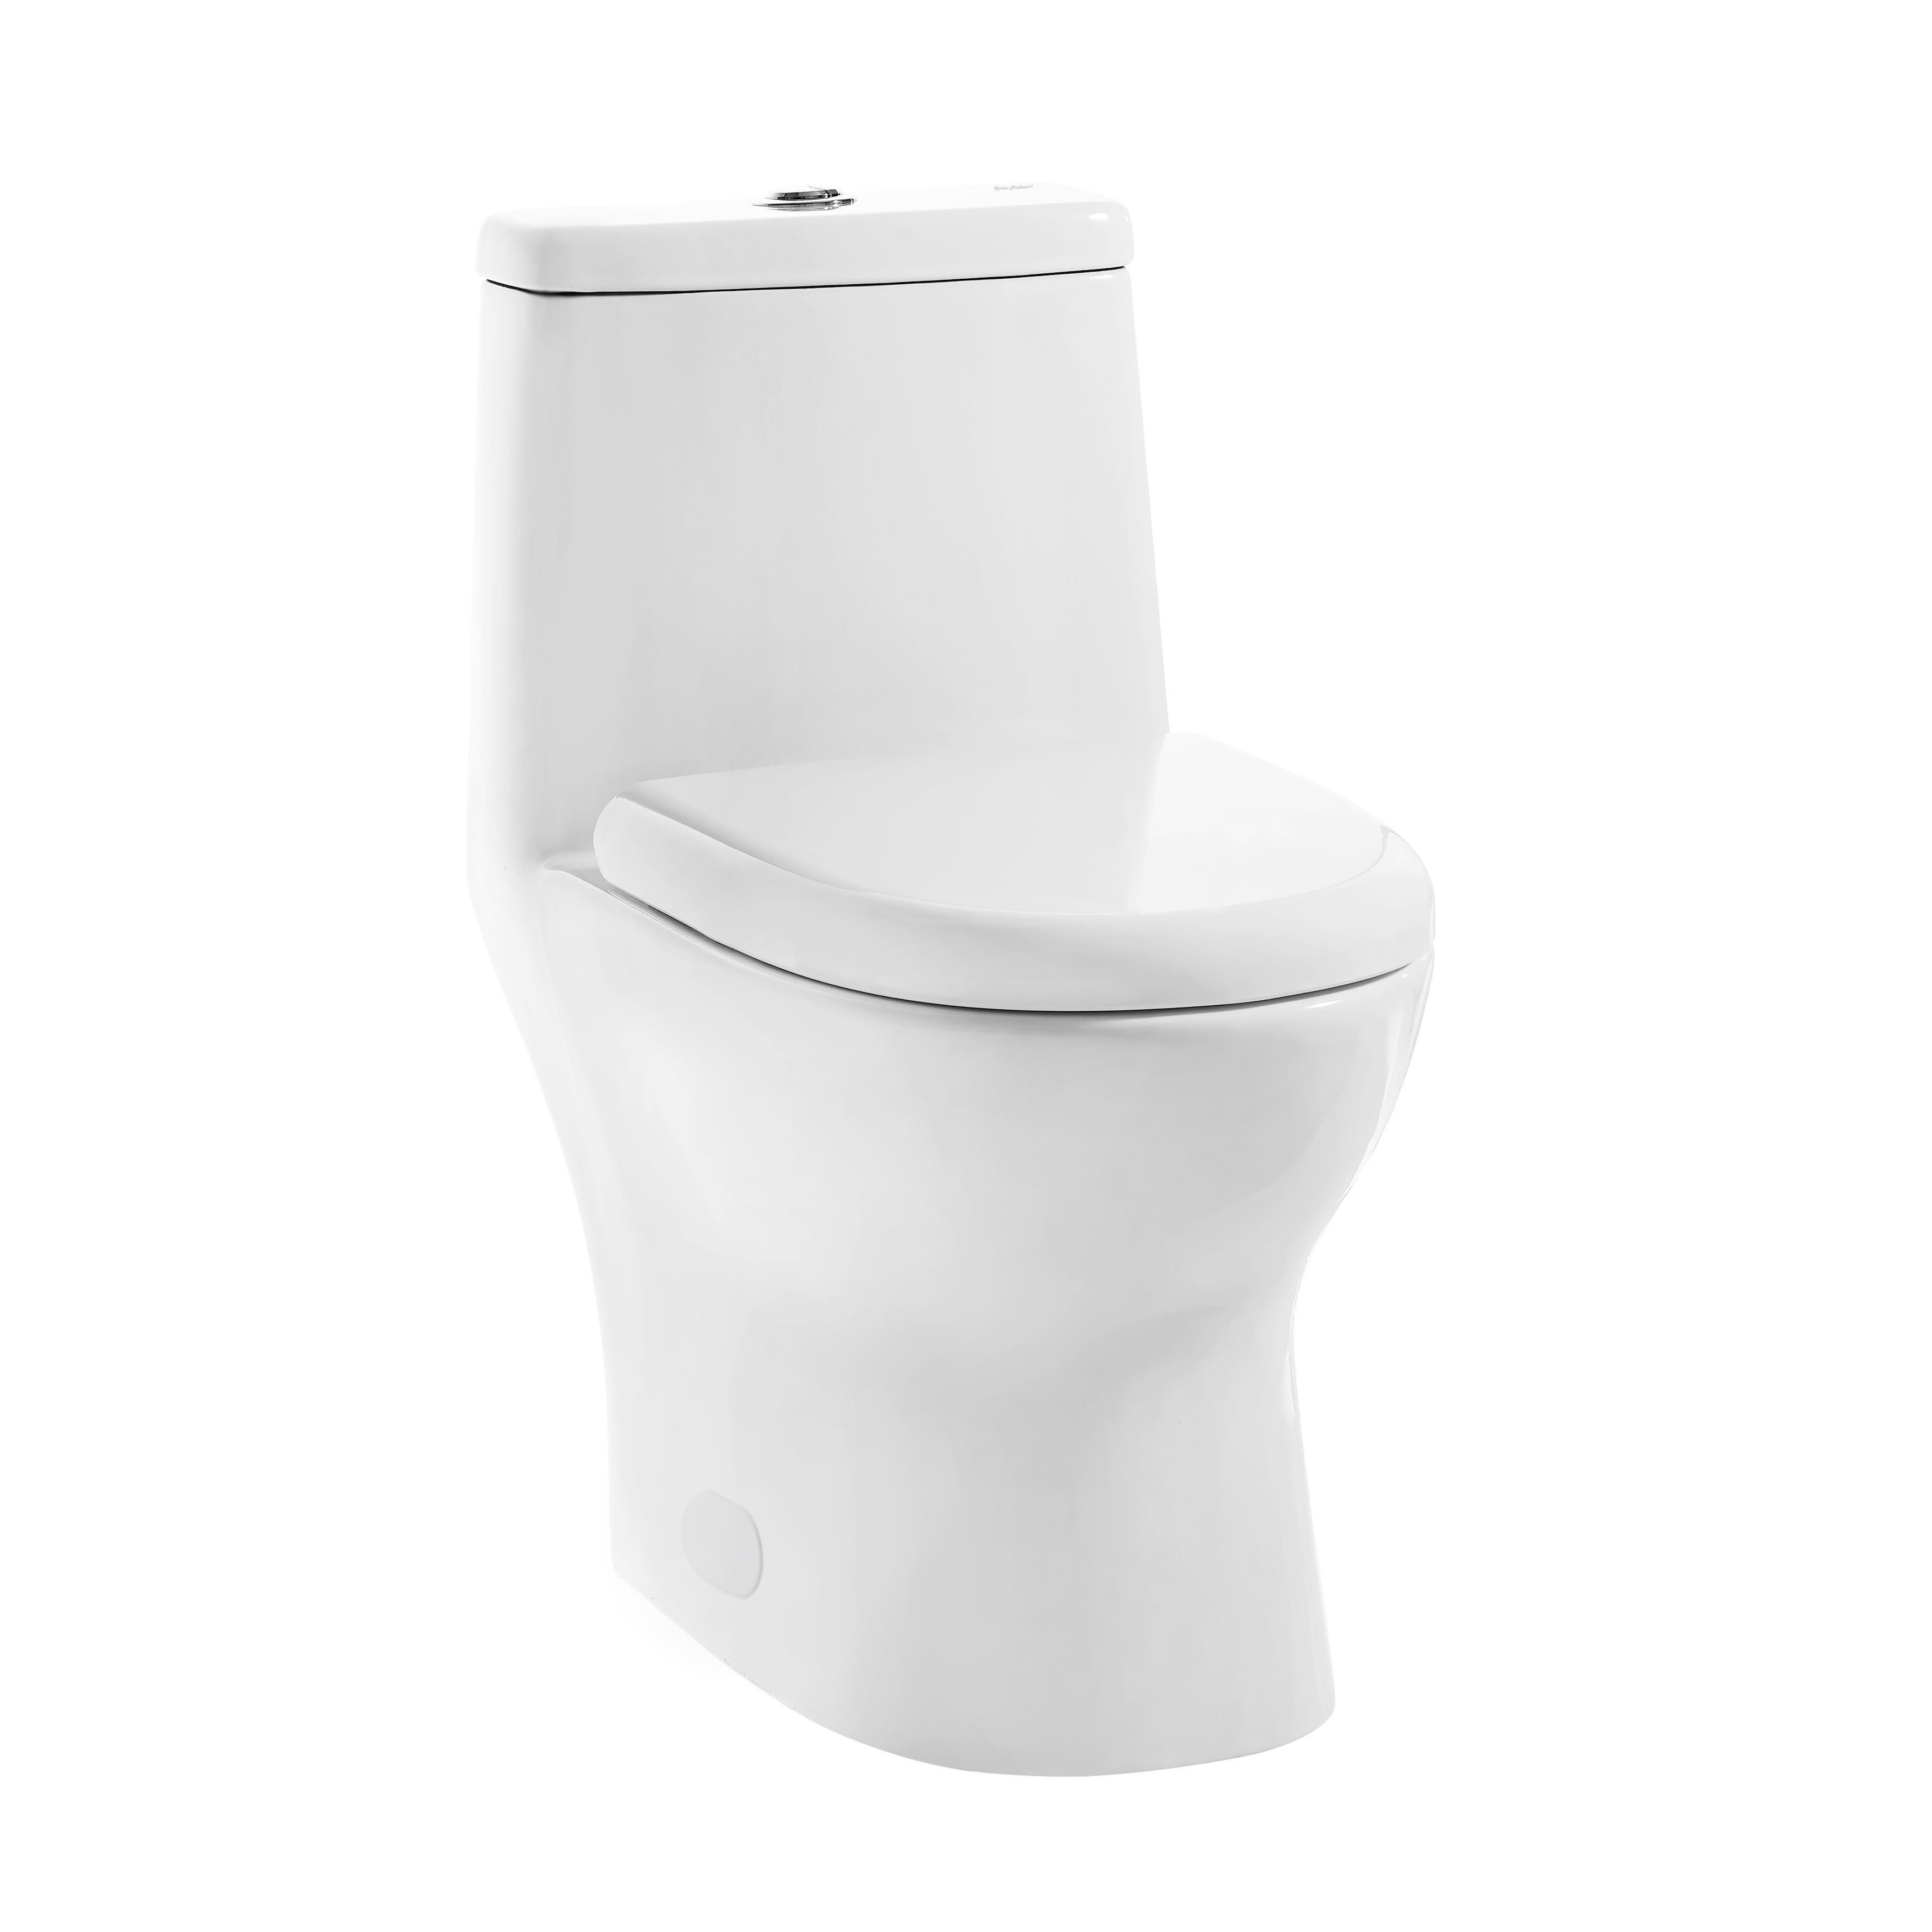 Swiss Dual Flush Ivy Madison Elongated One Piece Toilet